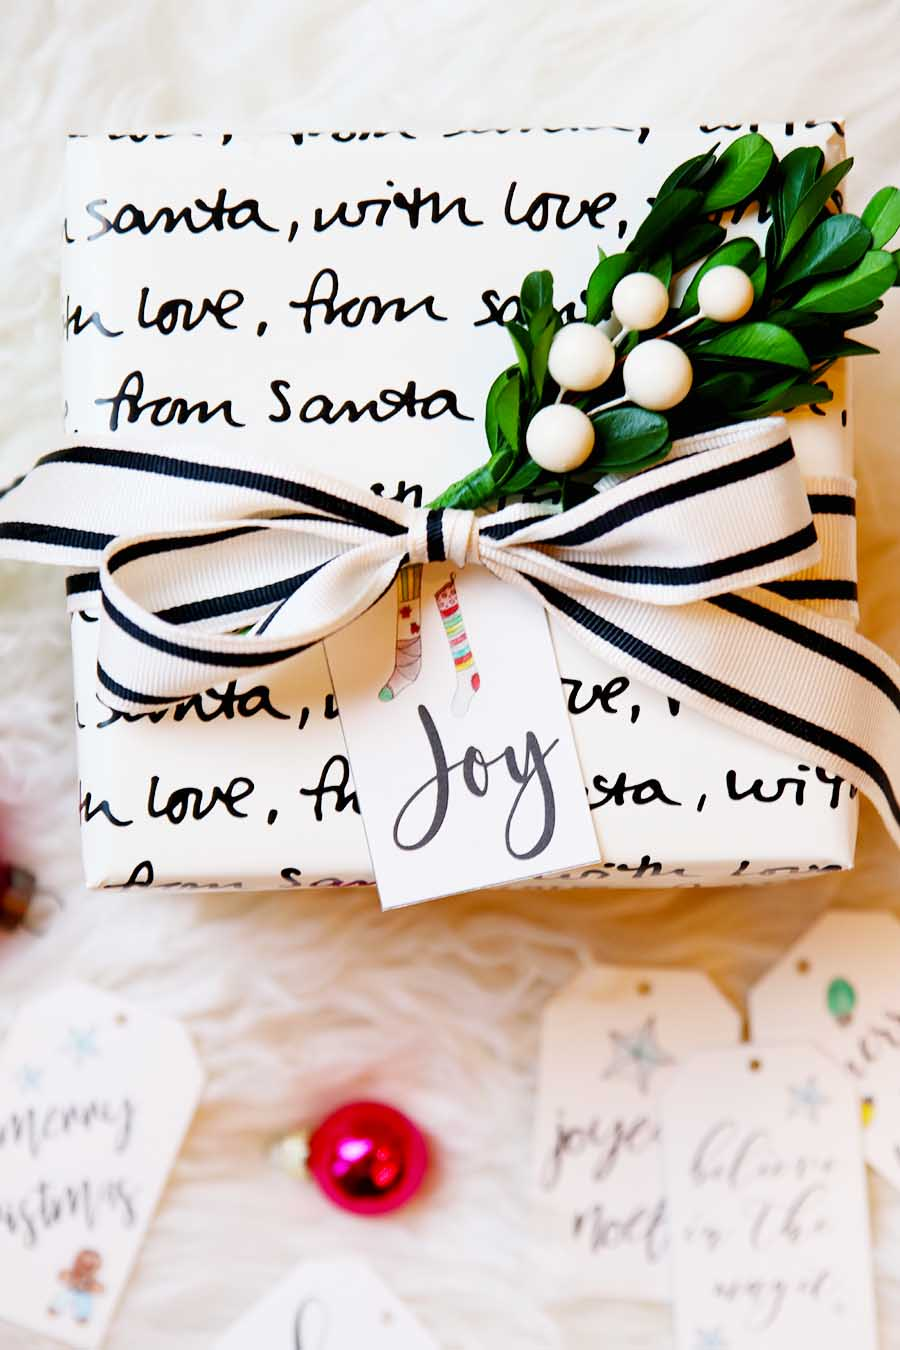 image relating to Printable Santa Gift Tags called Hand Lettered Xmas Present Tags - Totally free Printable - Innovative Glam